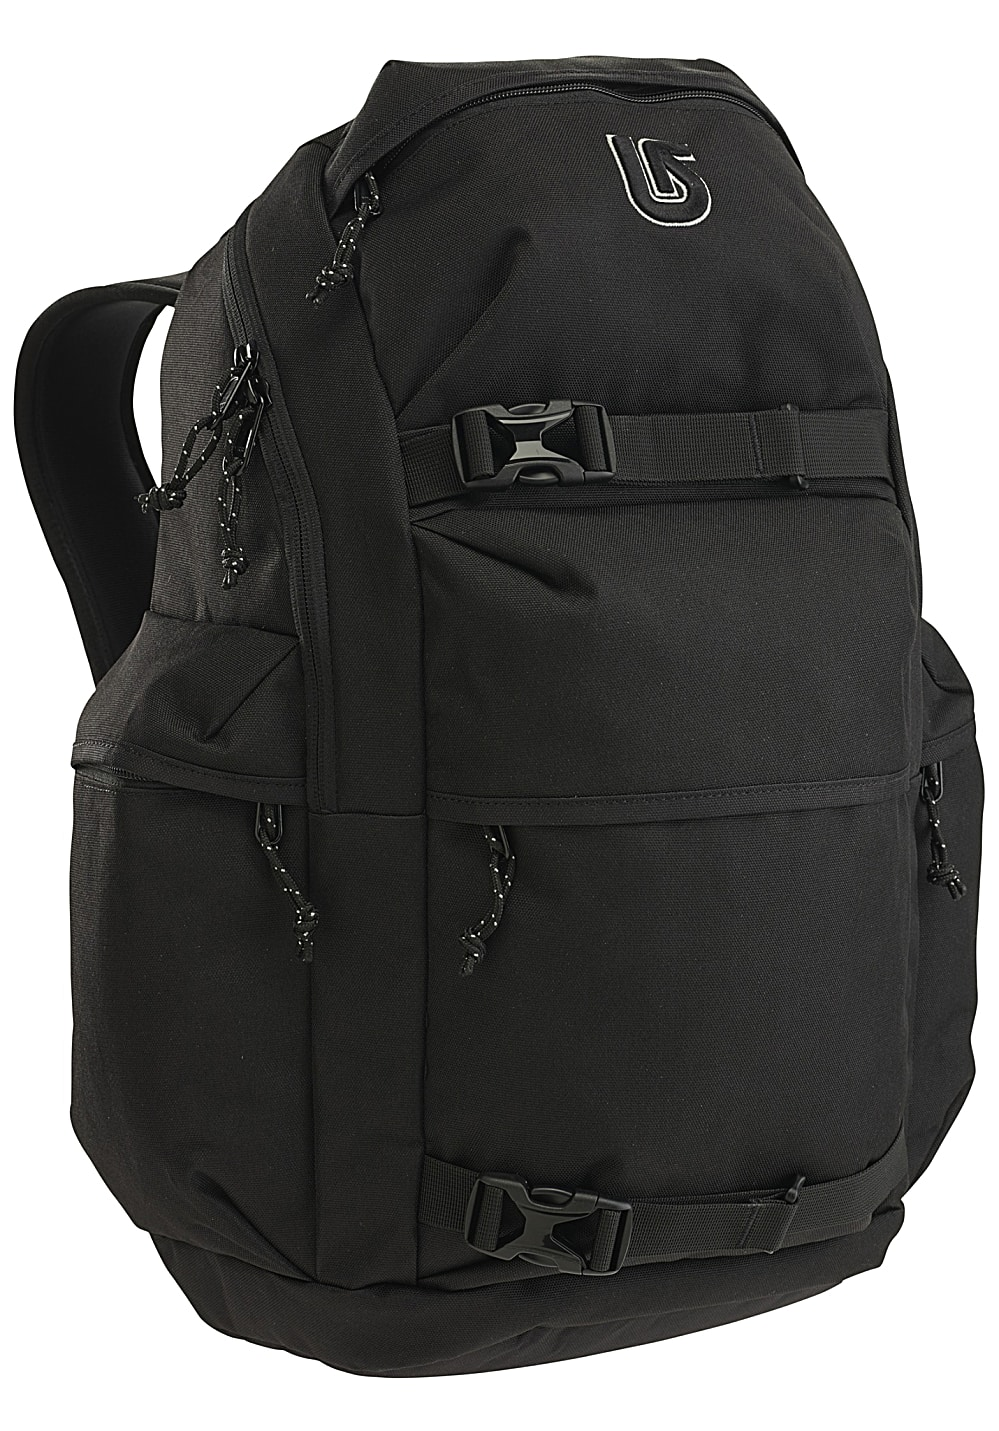 burton kilo rucksack schwarz planet sports. Black Bedroom Furniture Sets. Home Design Ideas